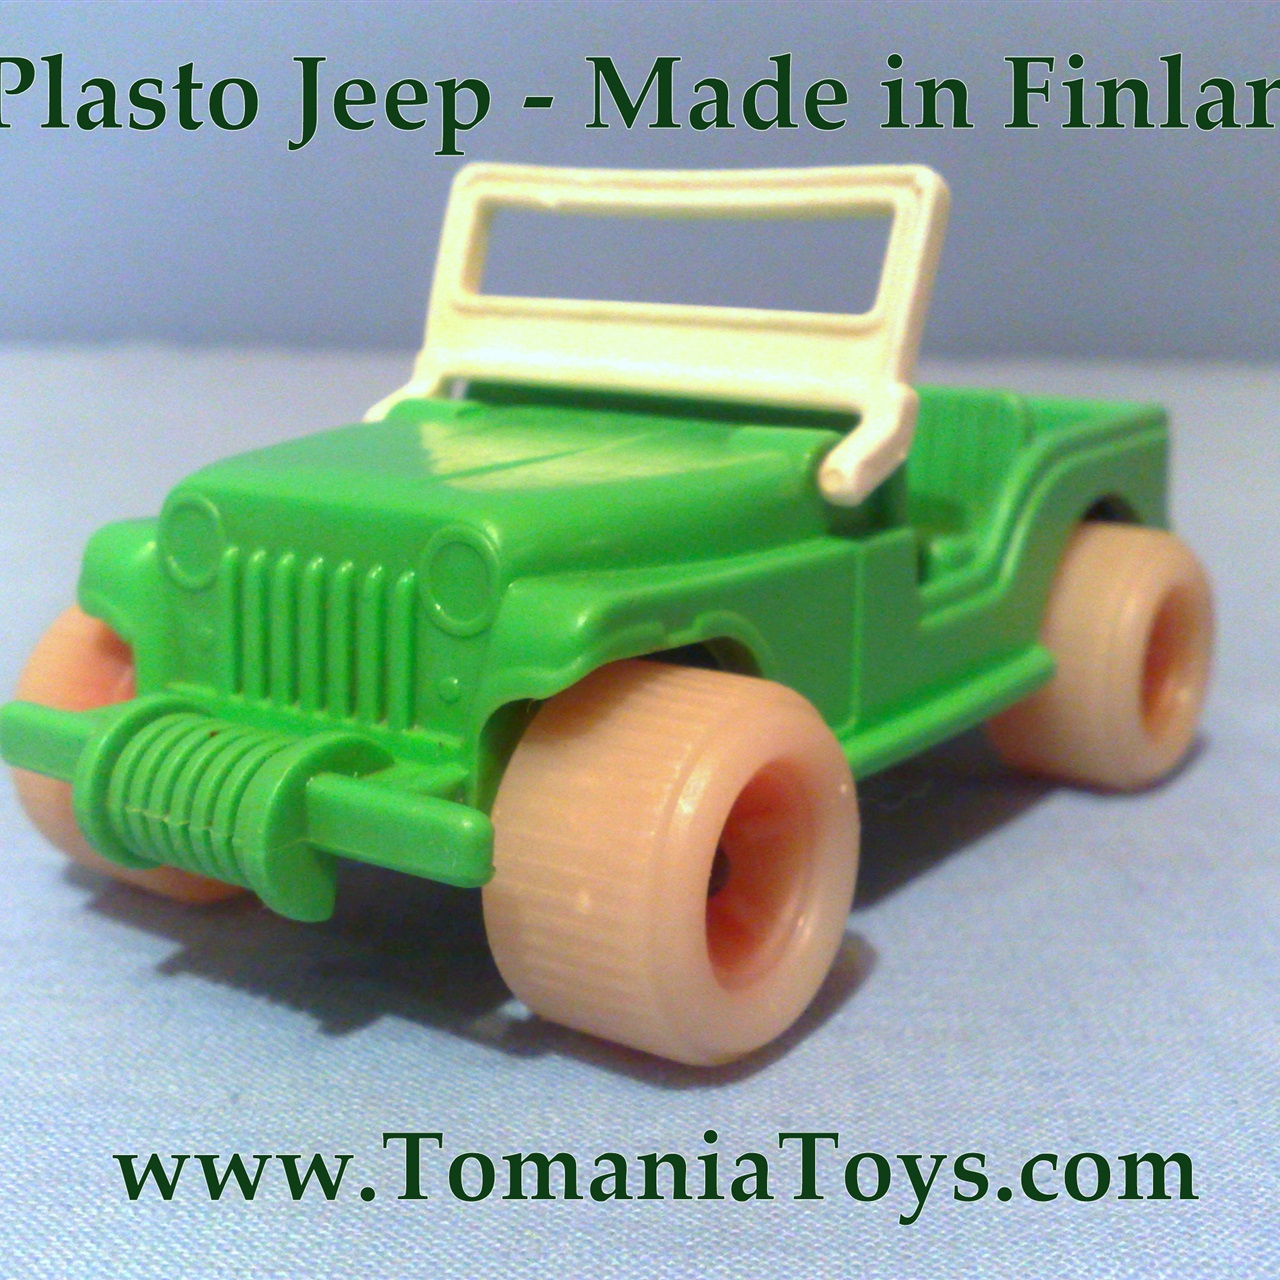 Made In Finland Toys Www Tomaniatoys Com